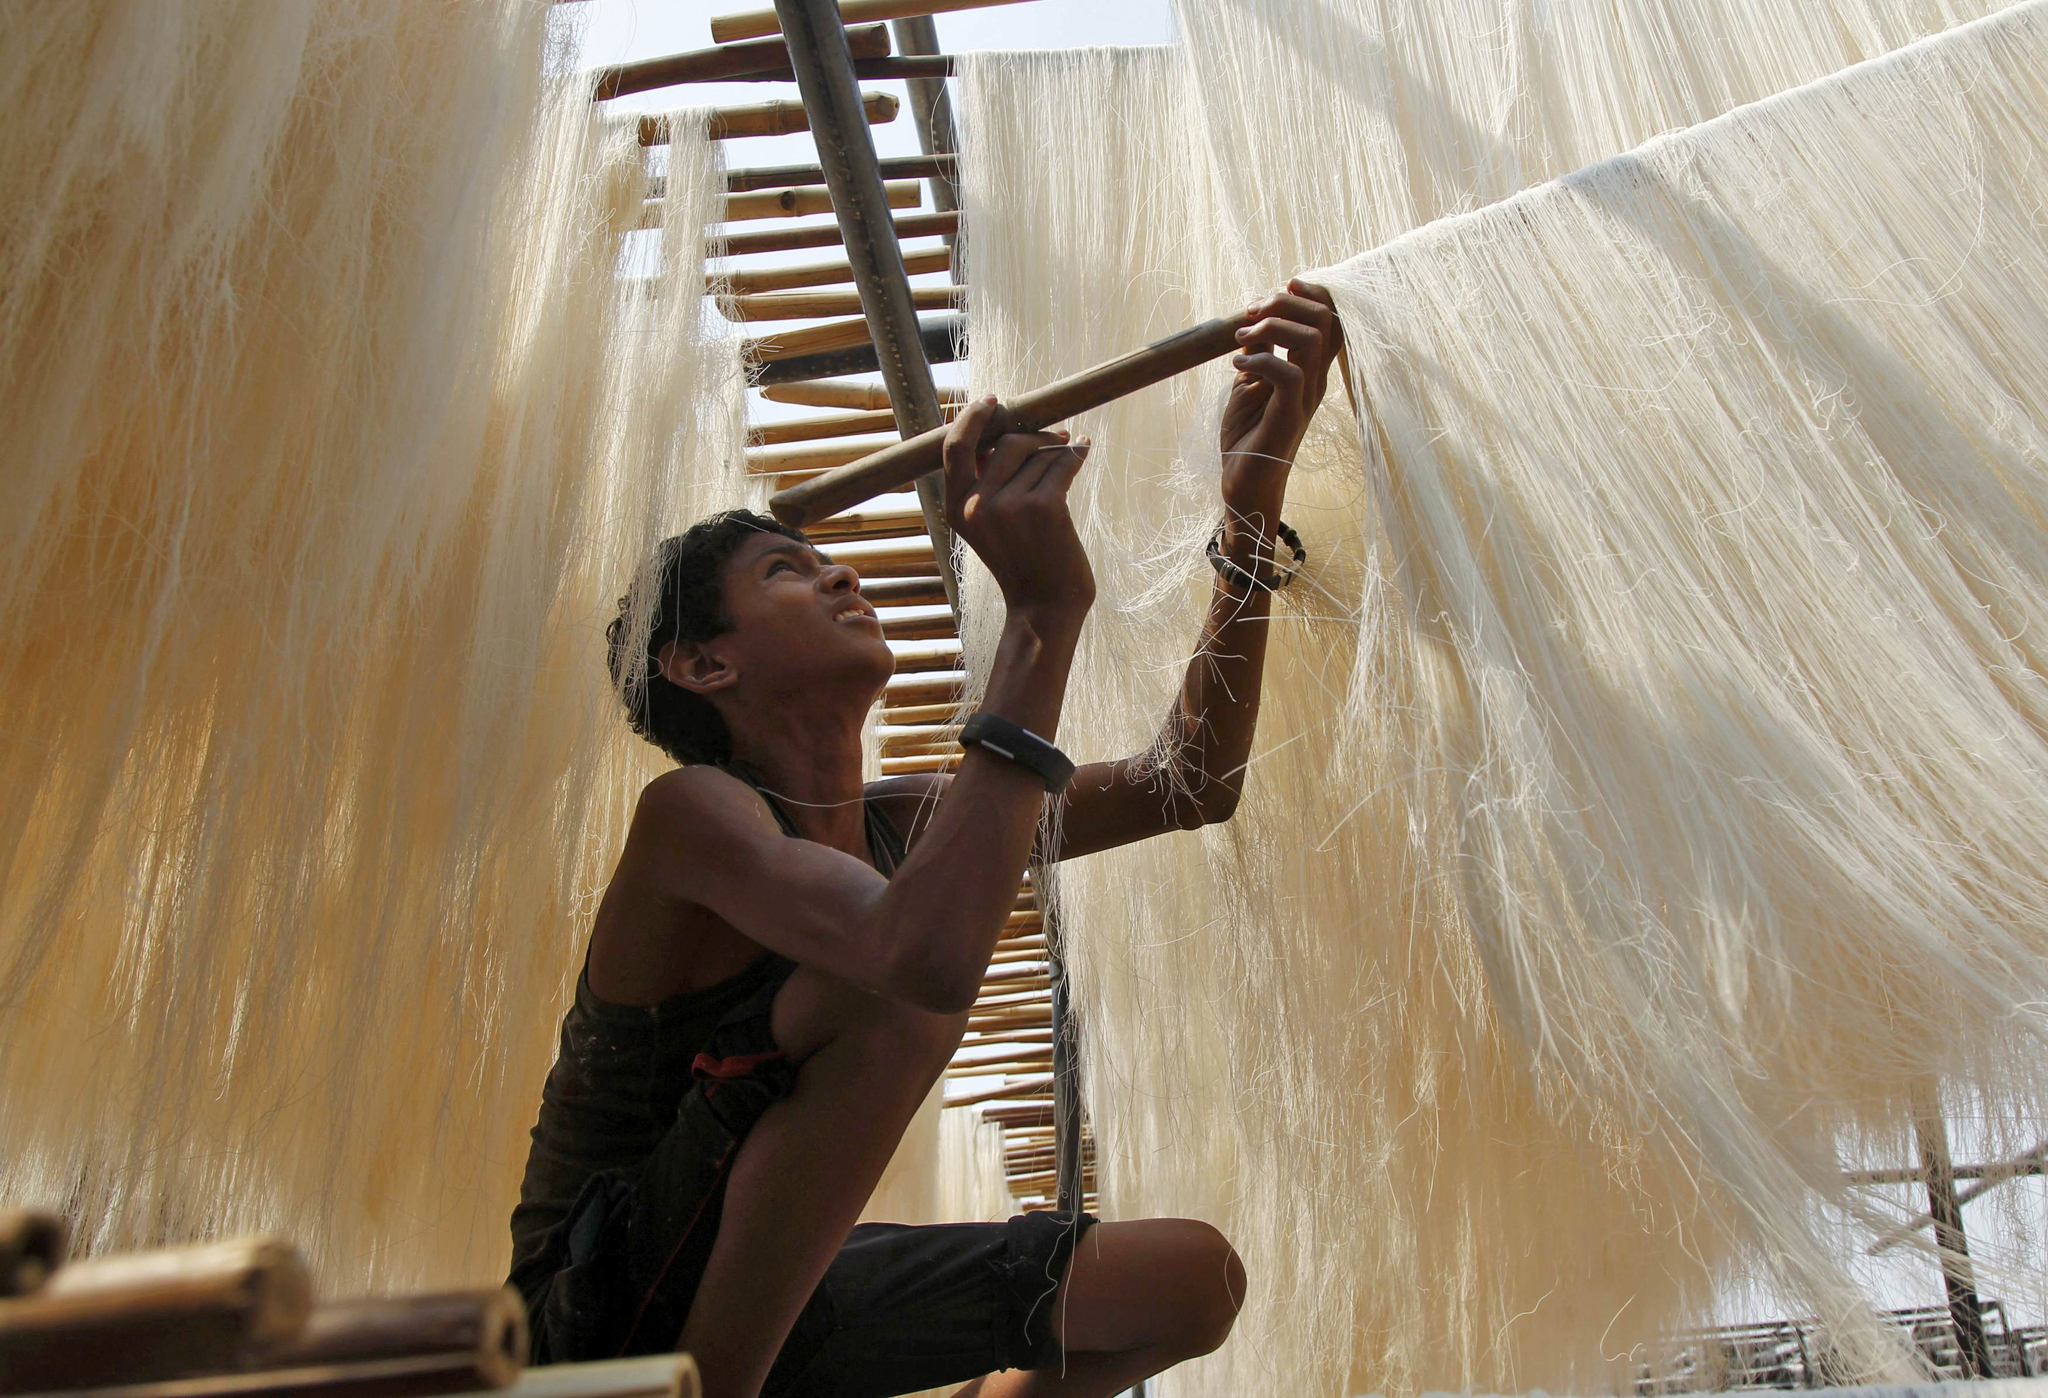 A boy hangs strands of vermicelli, a specialty eaten during the Muslim holy fasting month of Ramadan, to dry at a factory in Allahabad, India, June 7, 2016. REUTERS/Jitendra Prakash